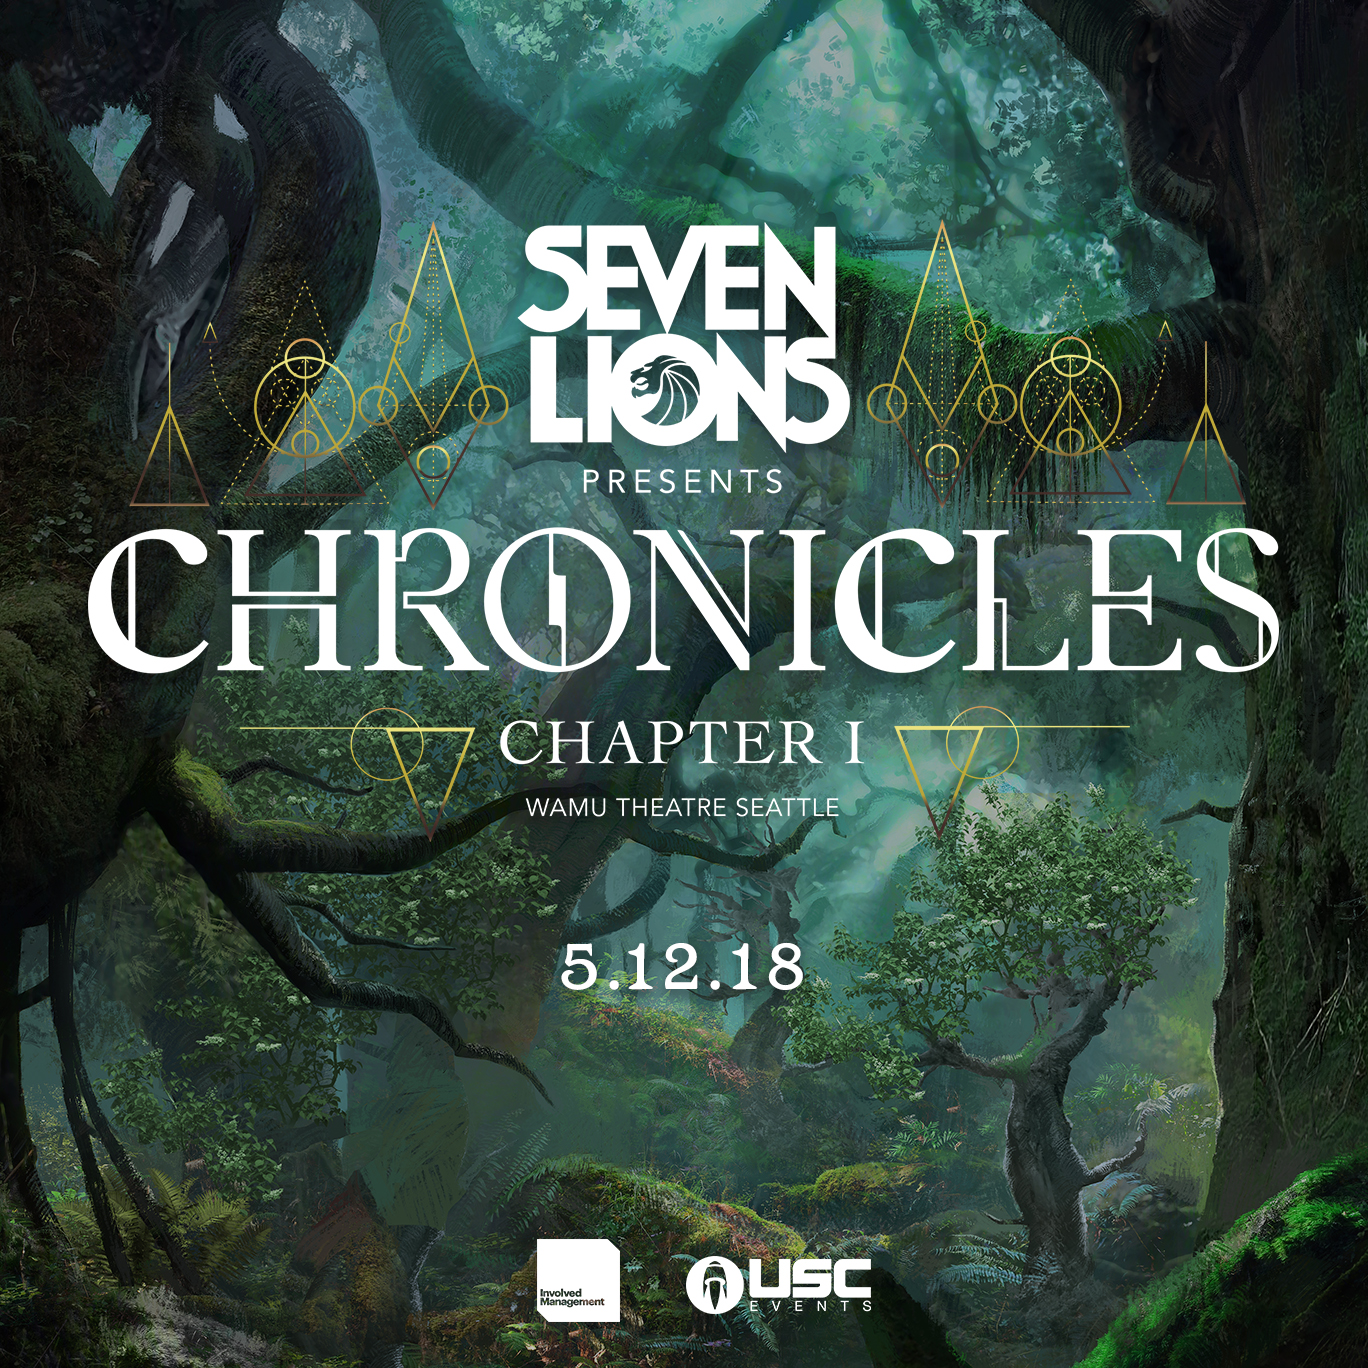 Seven Lions announces new immersive event series, 'Chronicles' - Dancing Astronaut